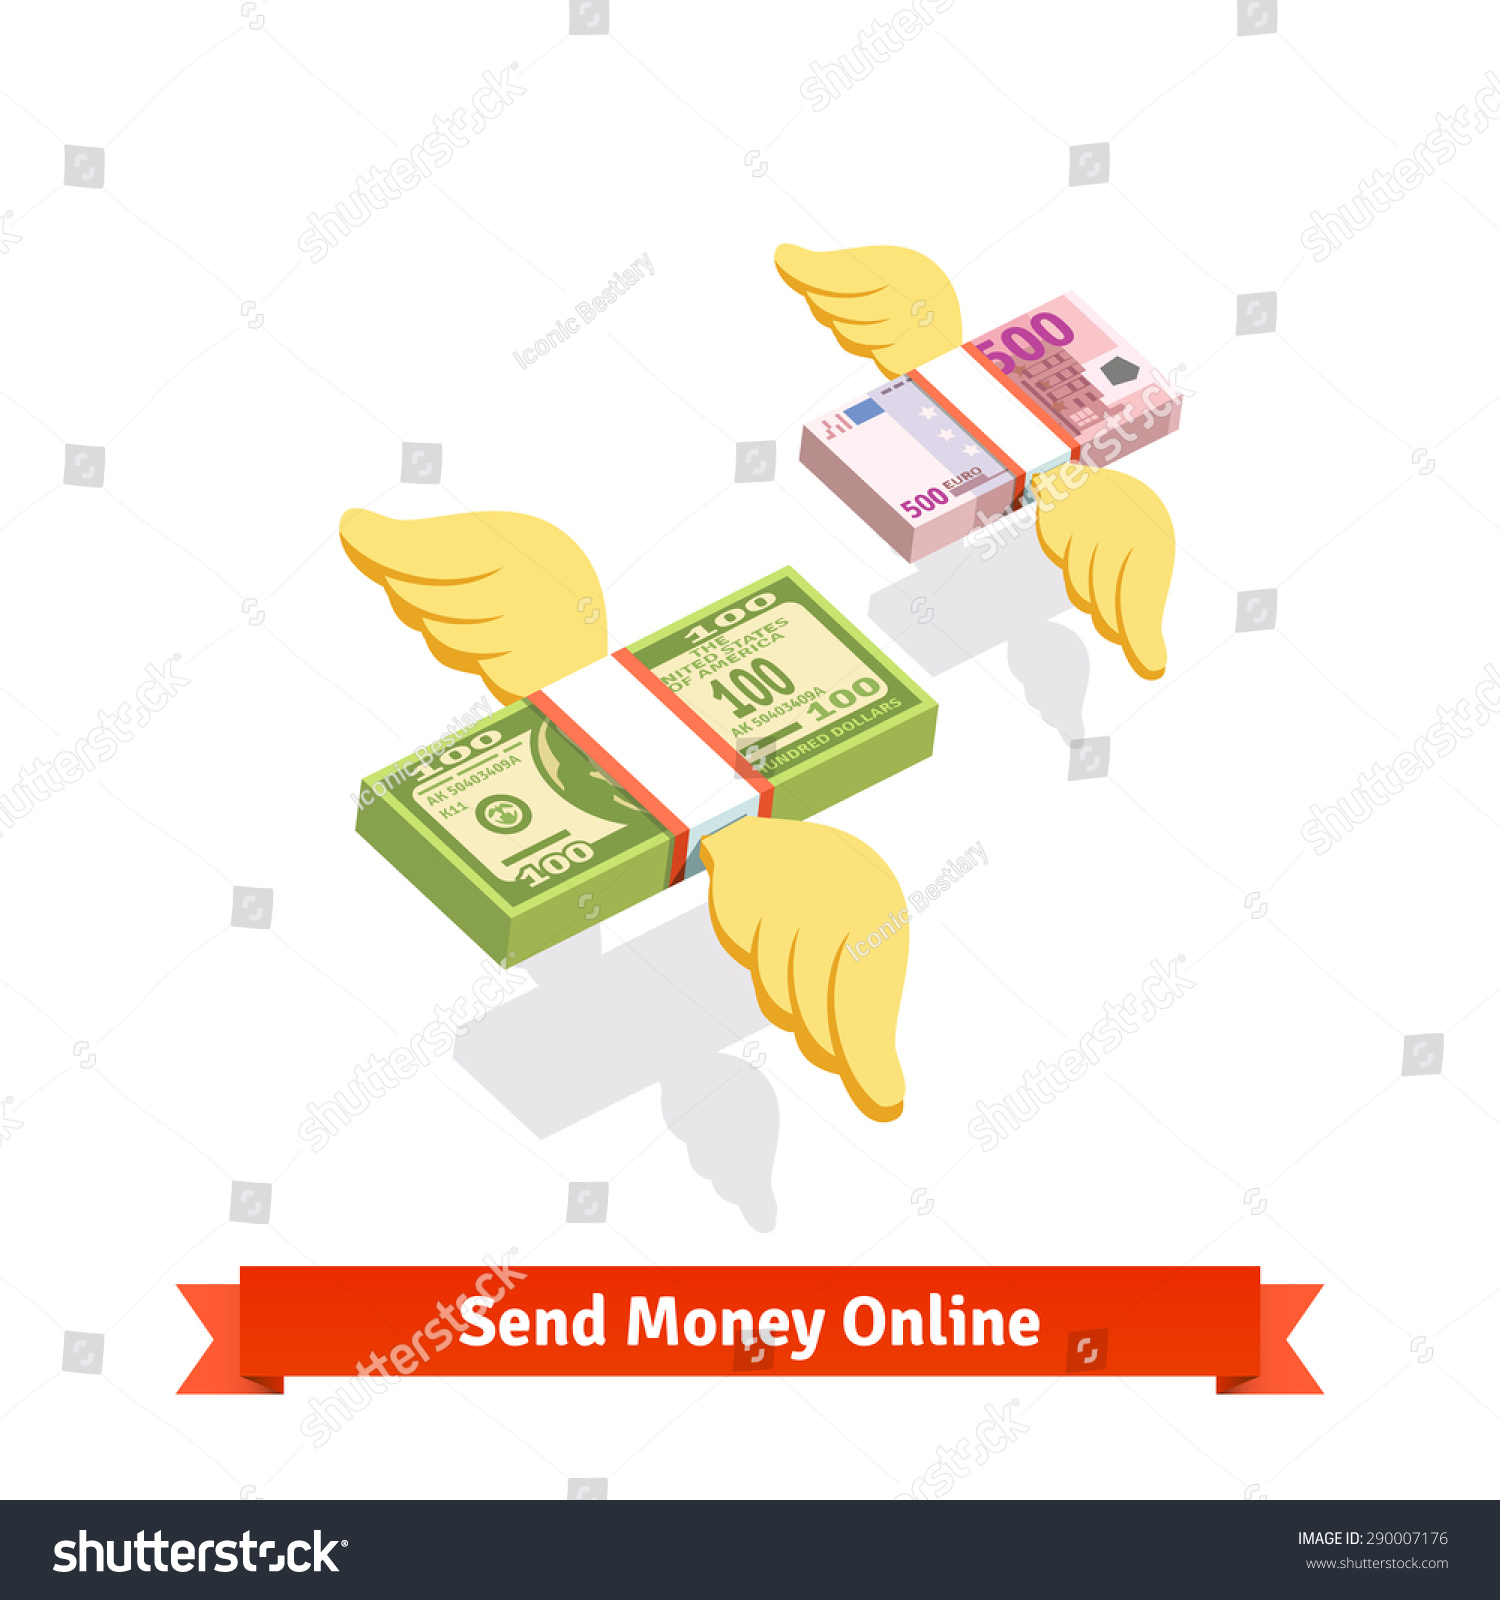 Sending Euros Trezor Bcc Wiring Money Cibc Additional Services And Charges When The Cheque Is In Any Currency Different From Only A Primary Signing Authority Of Business Account Can Send An